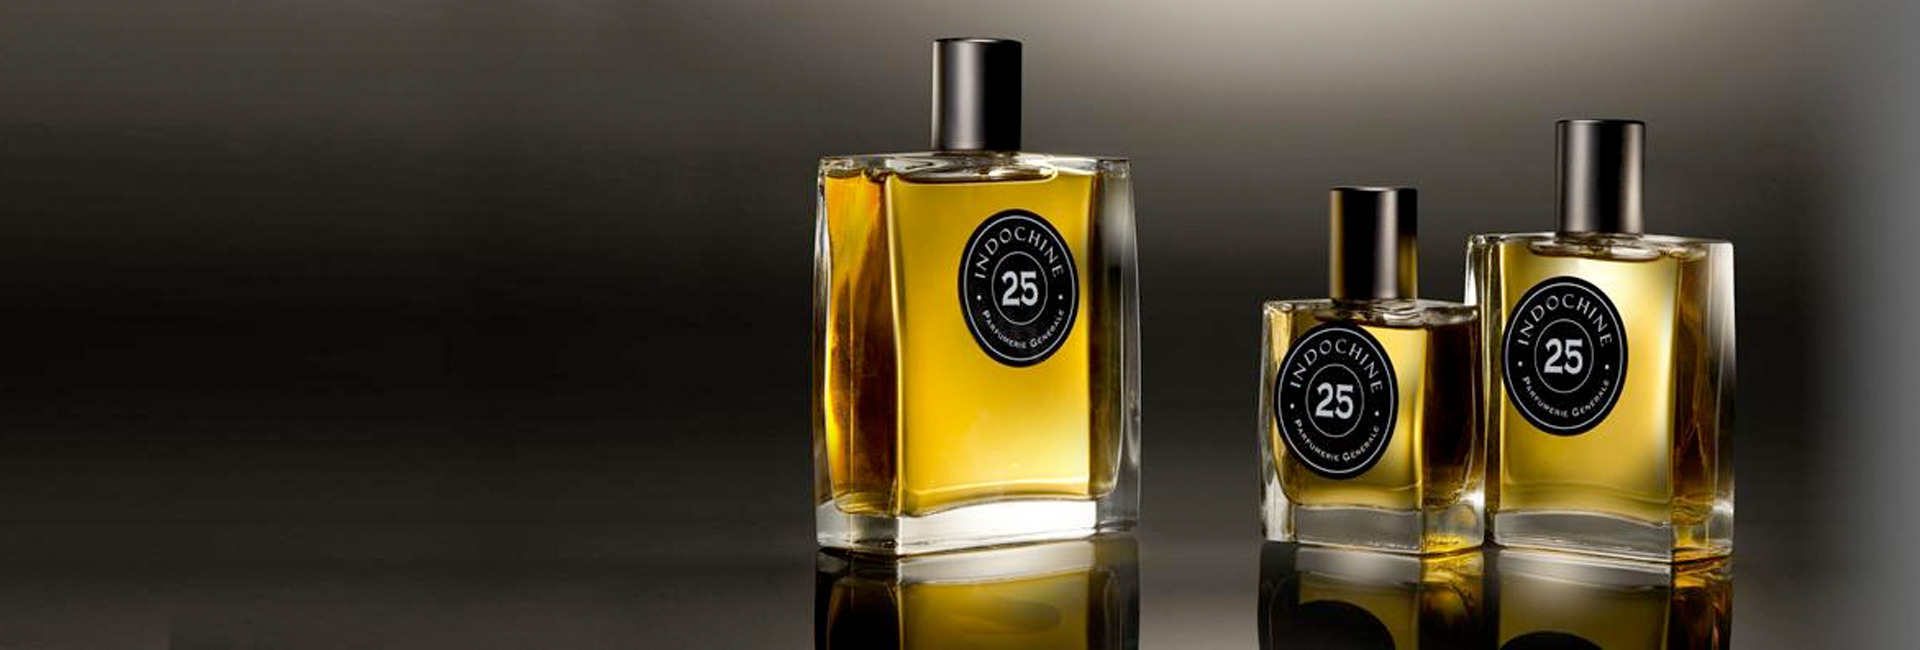 collection-numeraire-parfumerie-generale-2